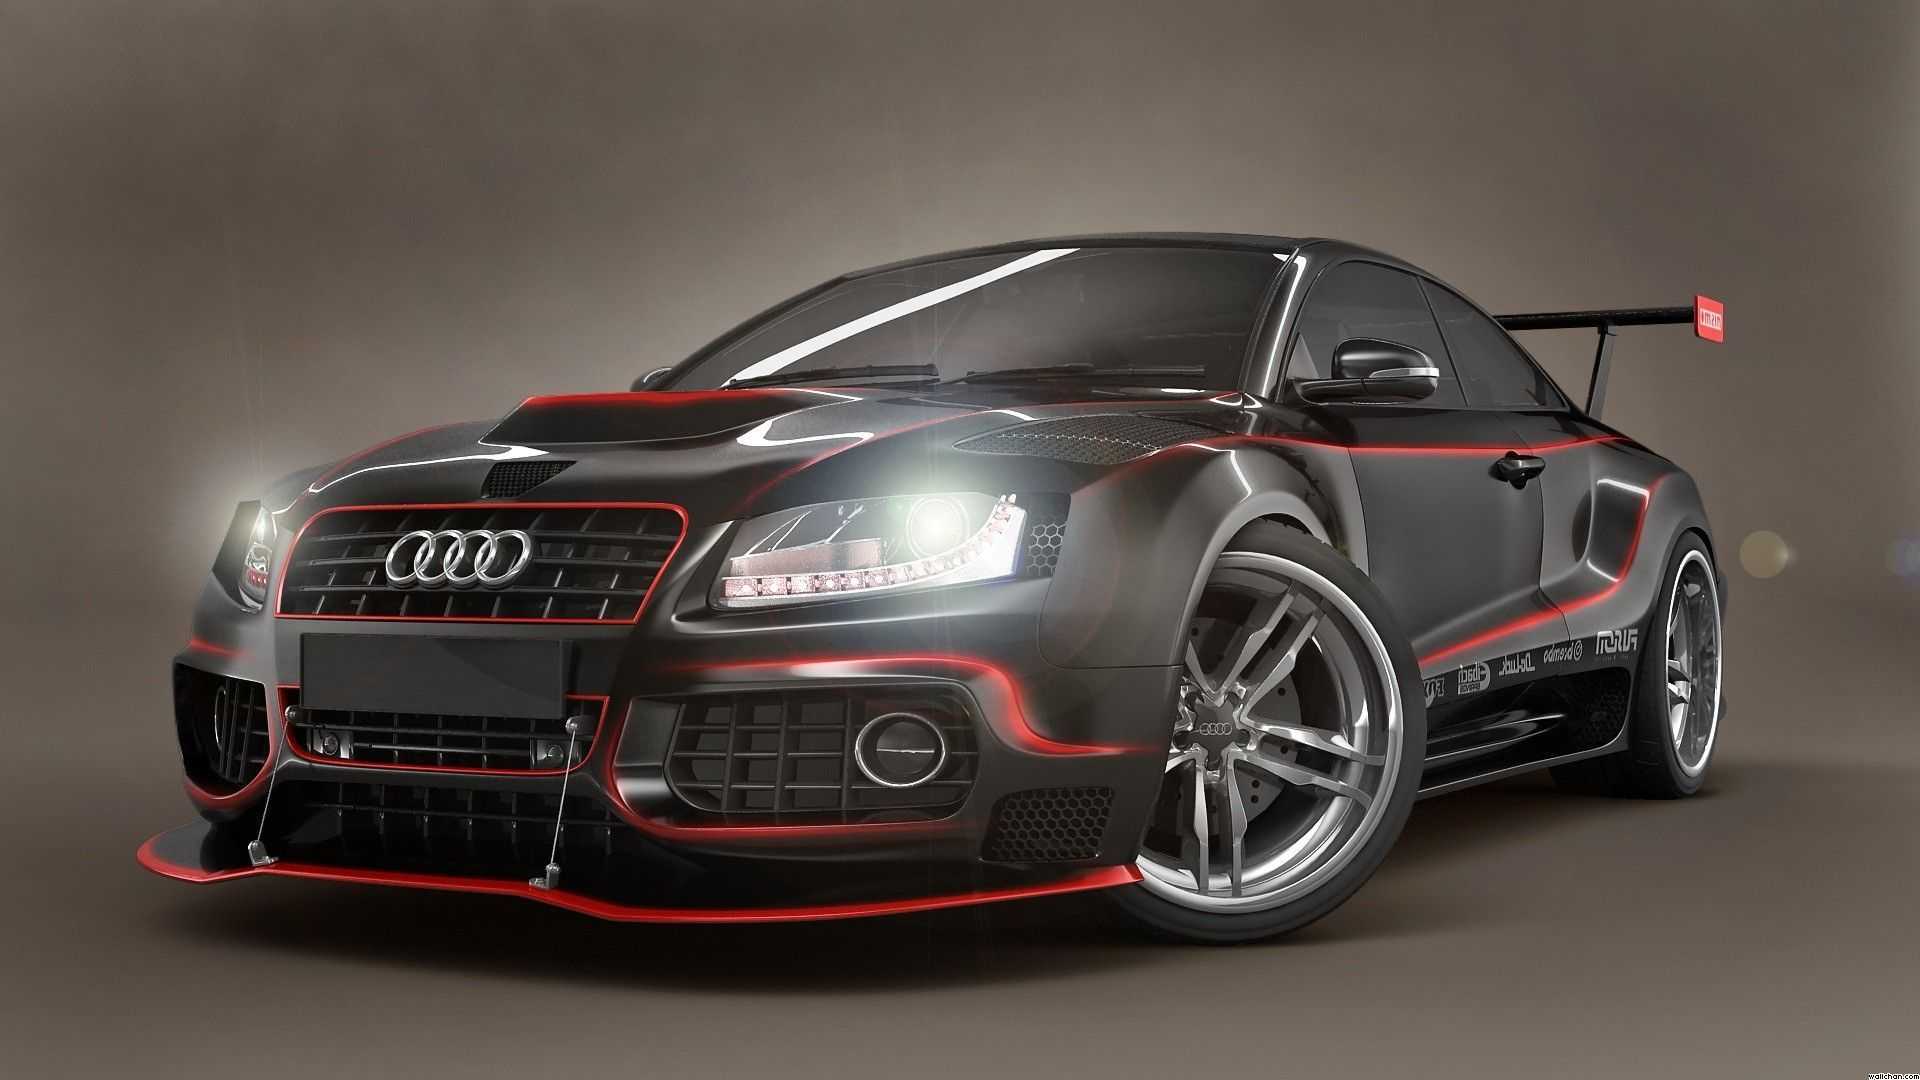 Modified Supercars Wallpapers - Top Free Modified Supercars